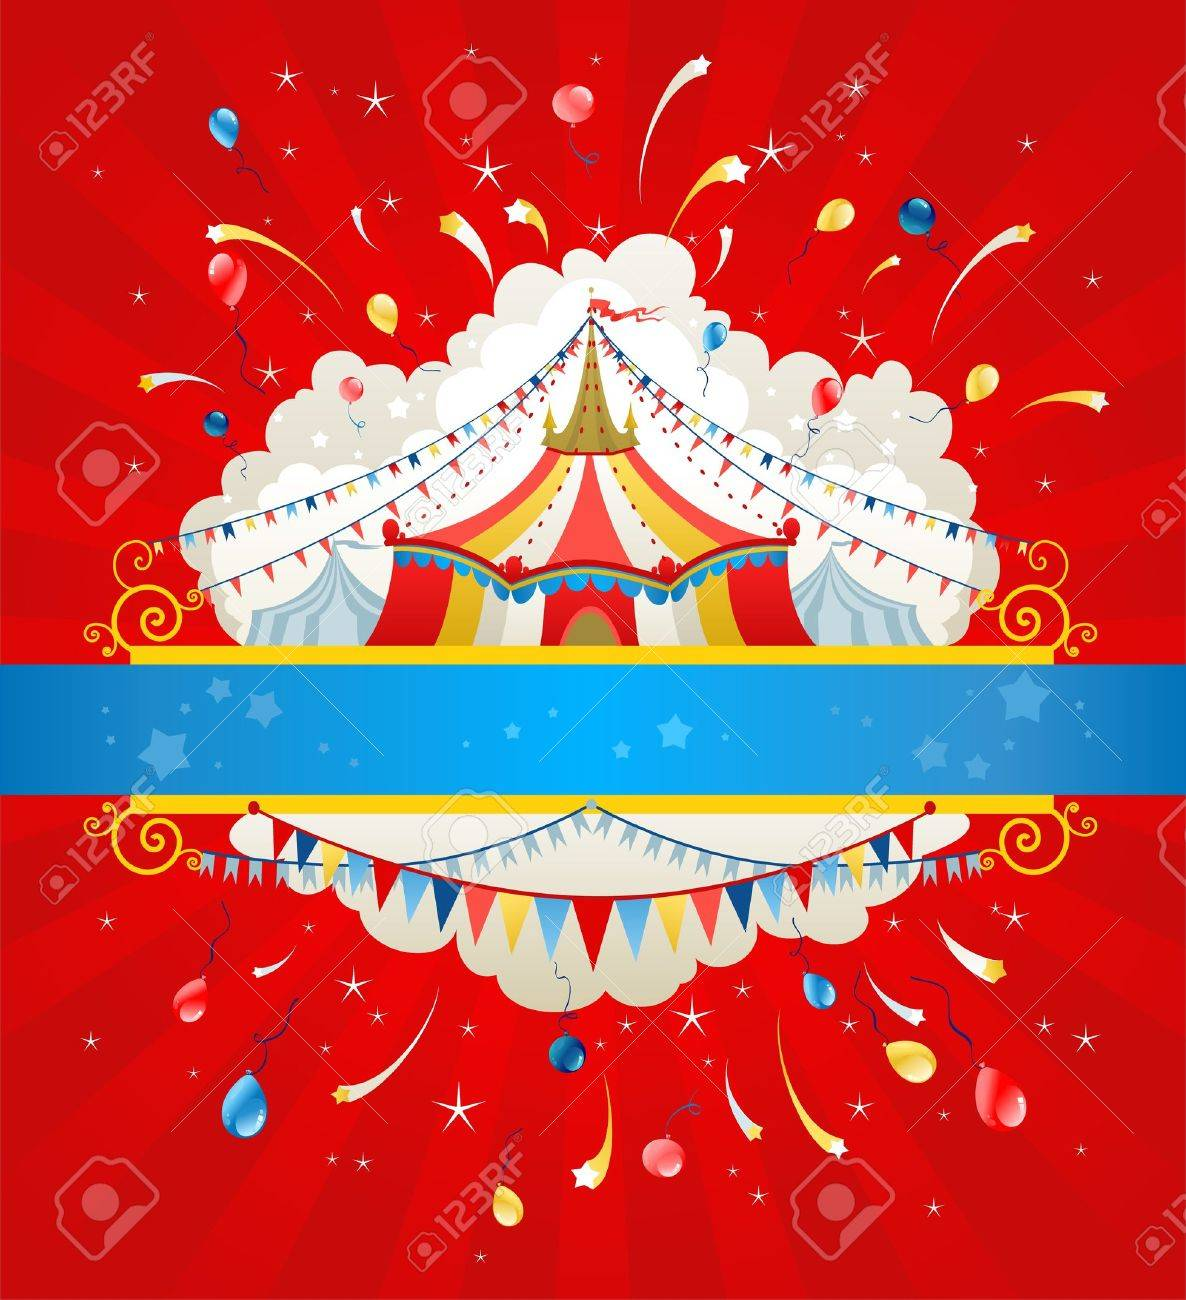 Circus background with space for text Stock Vector - 20544512